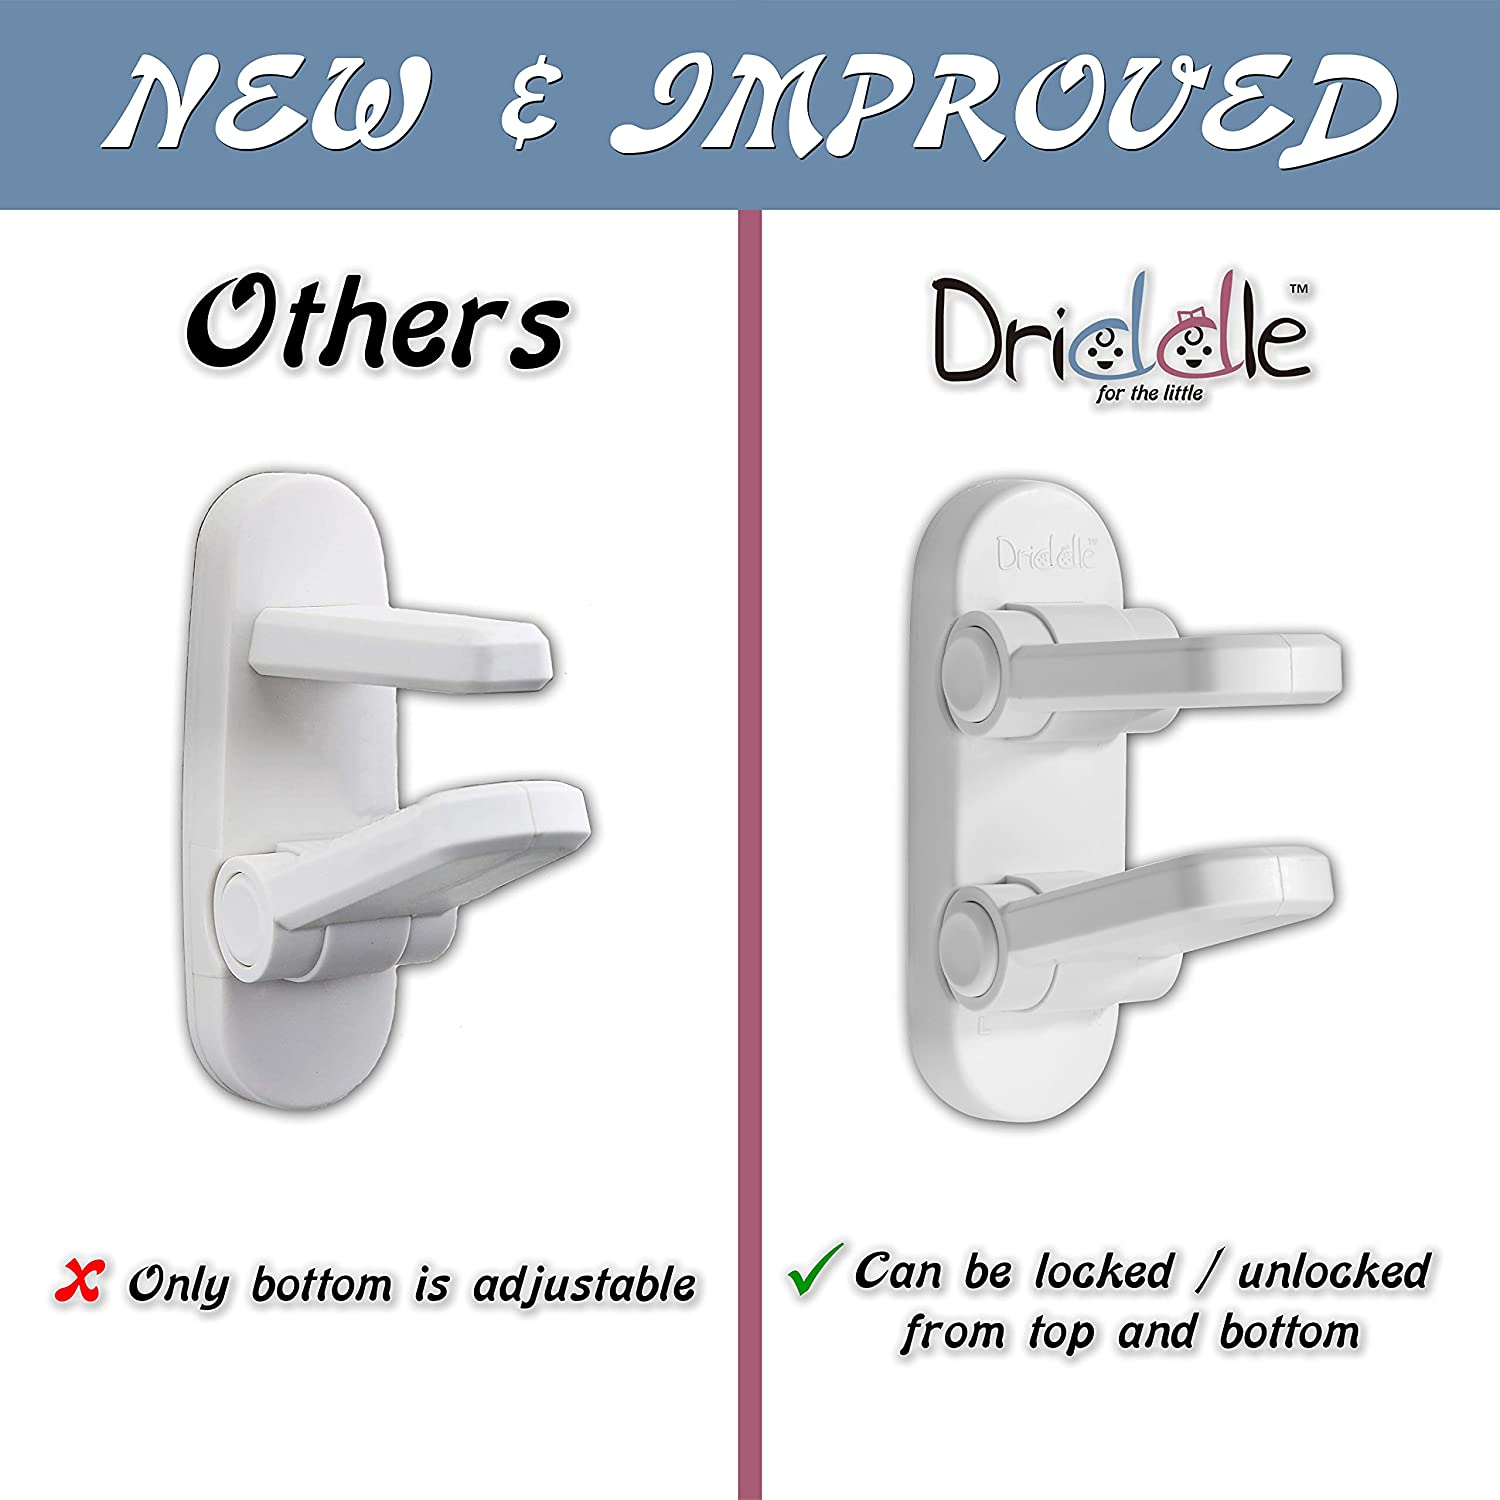 New & Improved Door Lever Baby Safety Lock - Prevent Little Kids from Opening Doors with A Child Proof Door Handle Lock - 3M Adhesive - Driddle